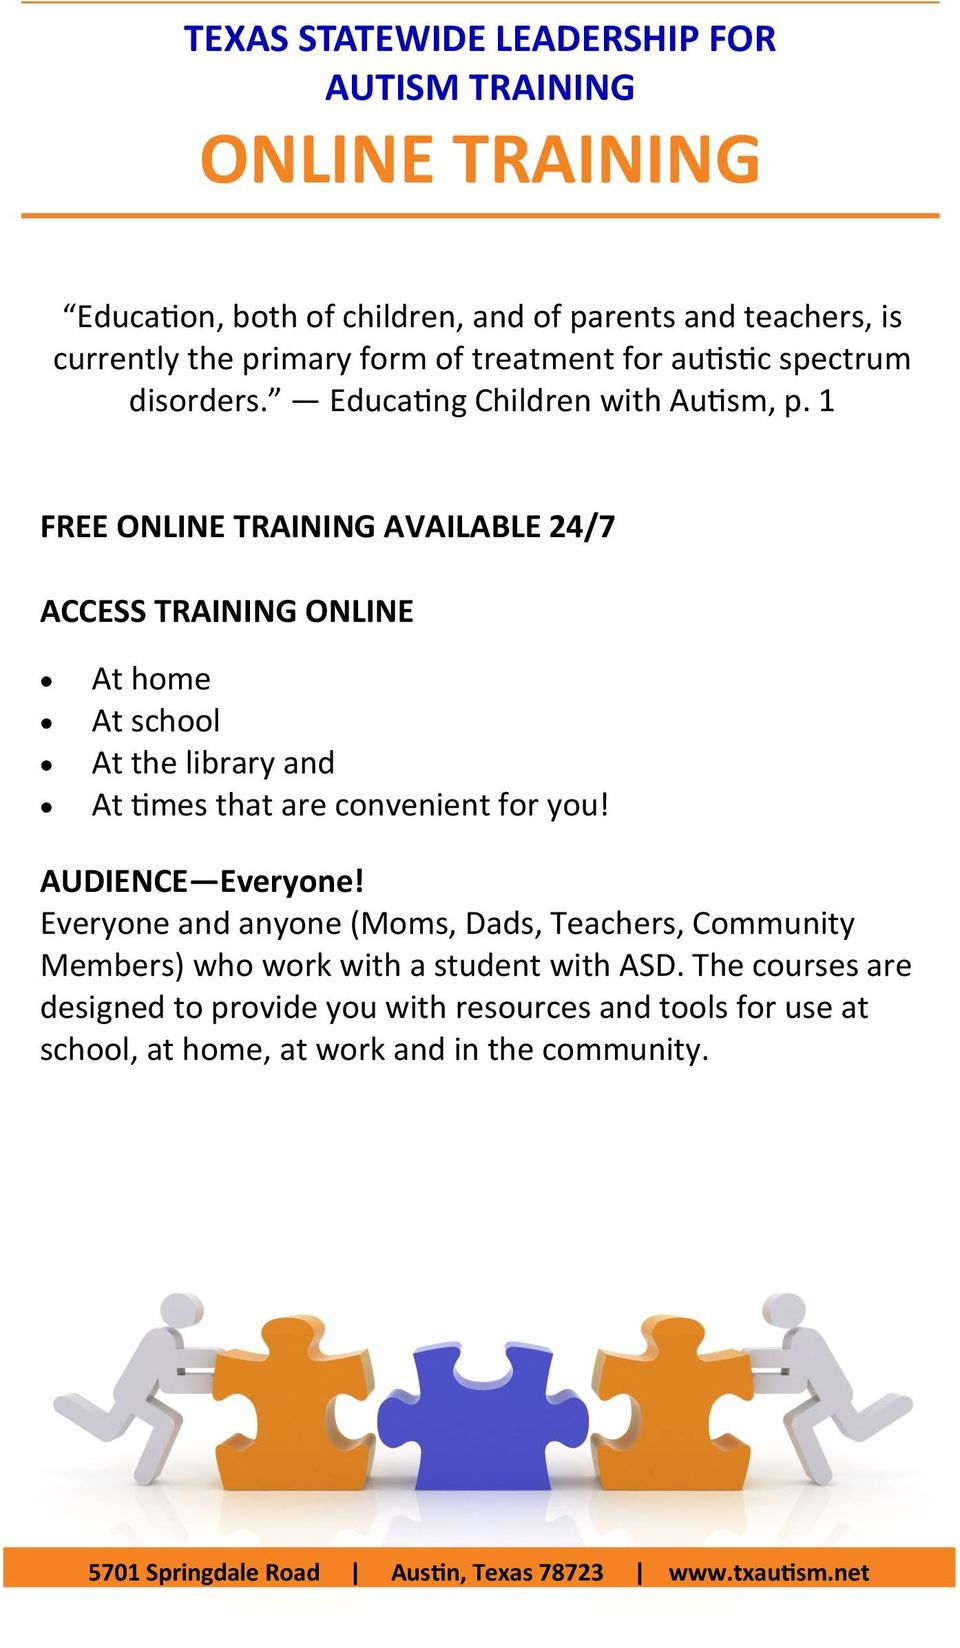 1 FREE ONLINE TRAINING AVAILABLE 24/7 ACCESS TRAINING ONLINE At home At school At the library and At times that are convenient for you! AUDIENCE Everyone!